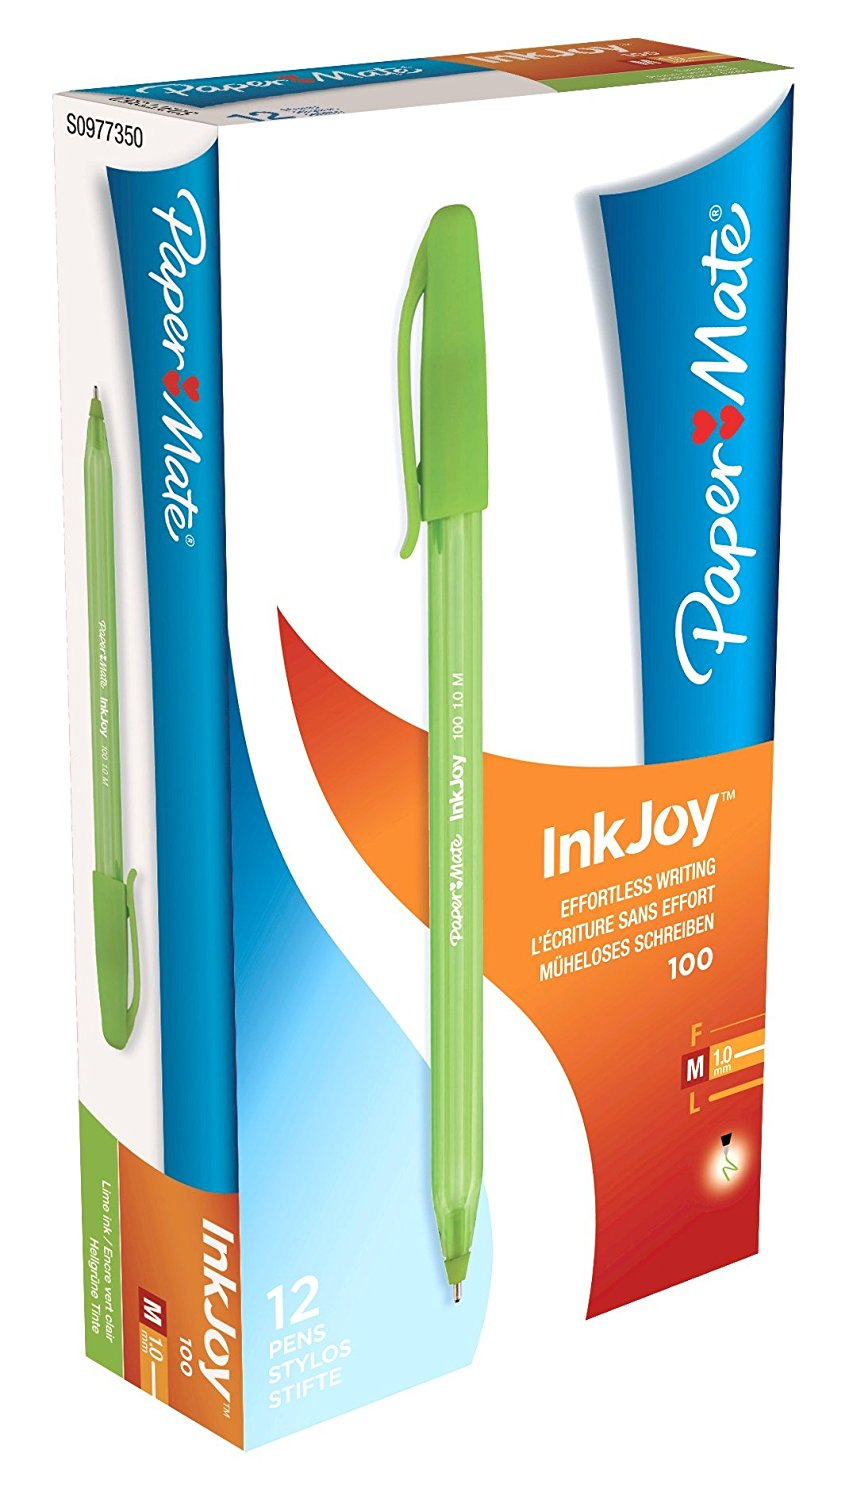 Paper Mate InkJoy 100 CAP Ball Pen Med Tip Light Green PK12